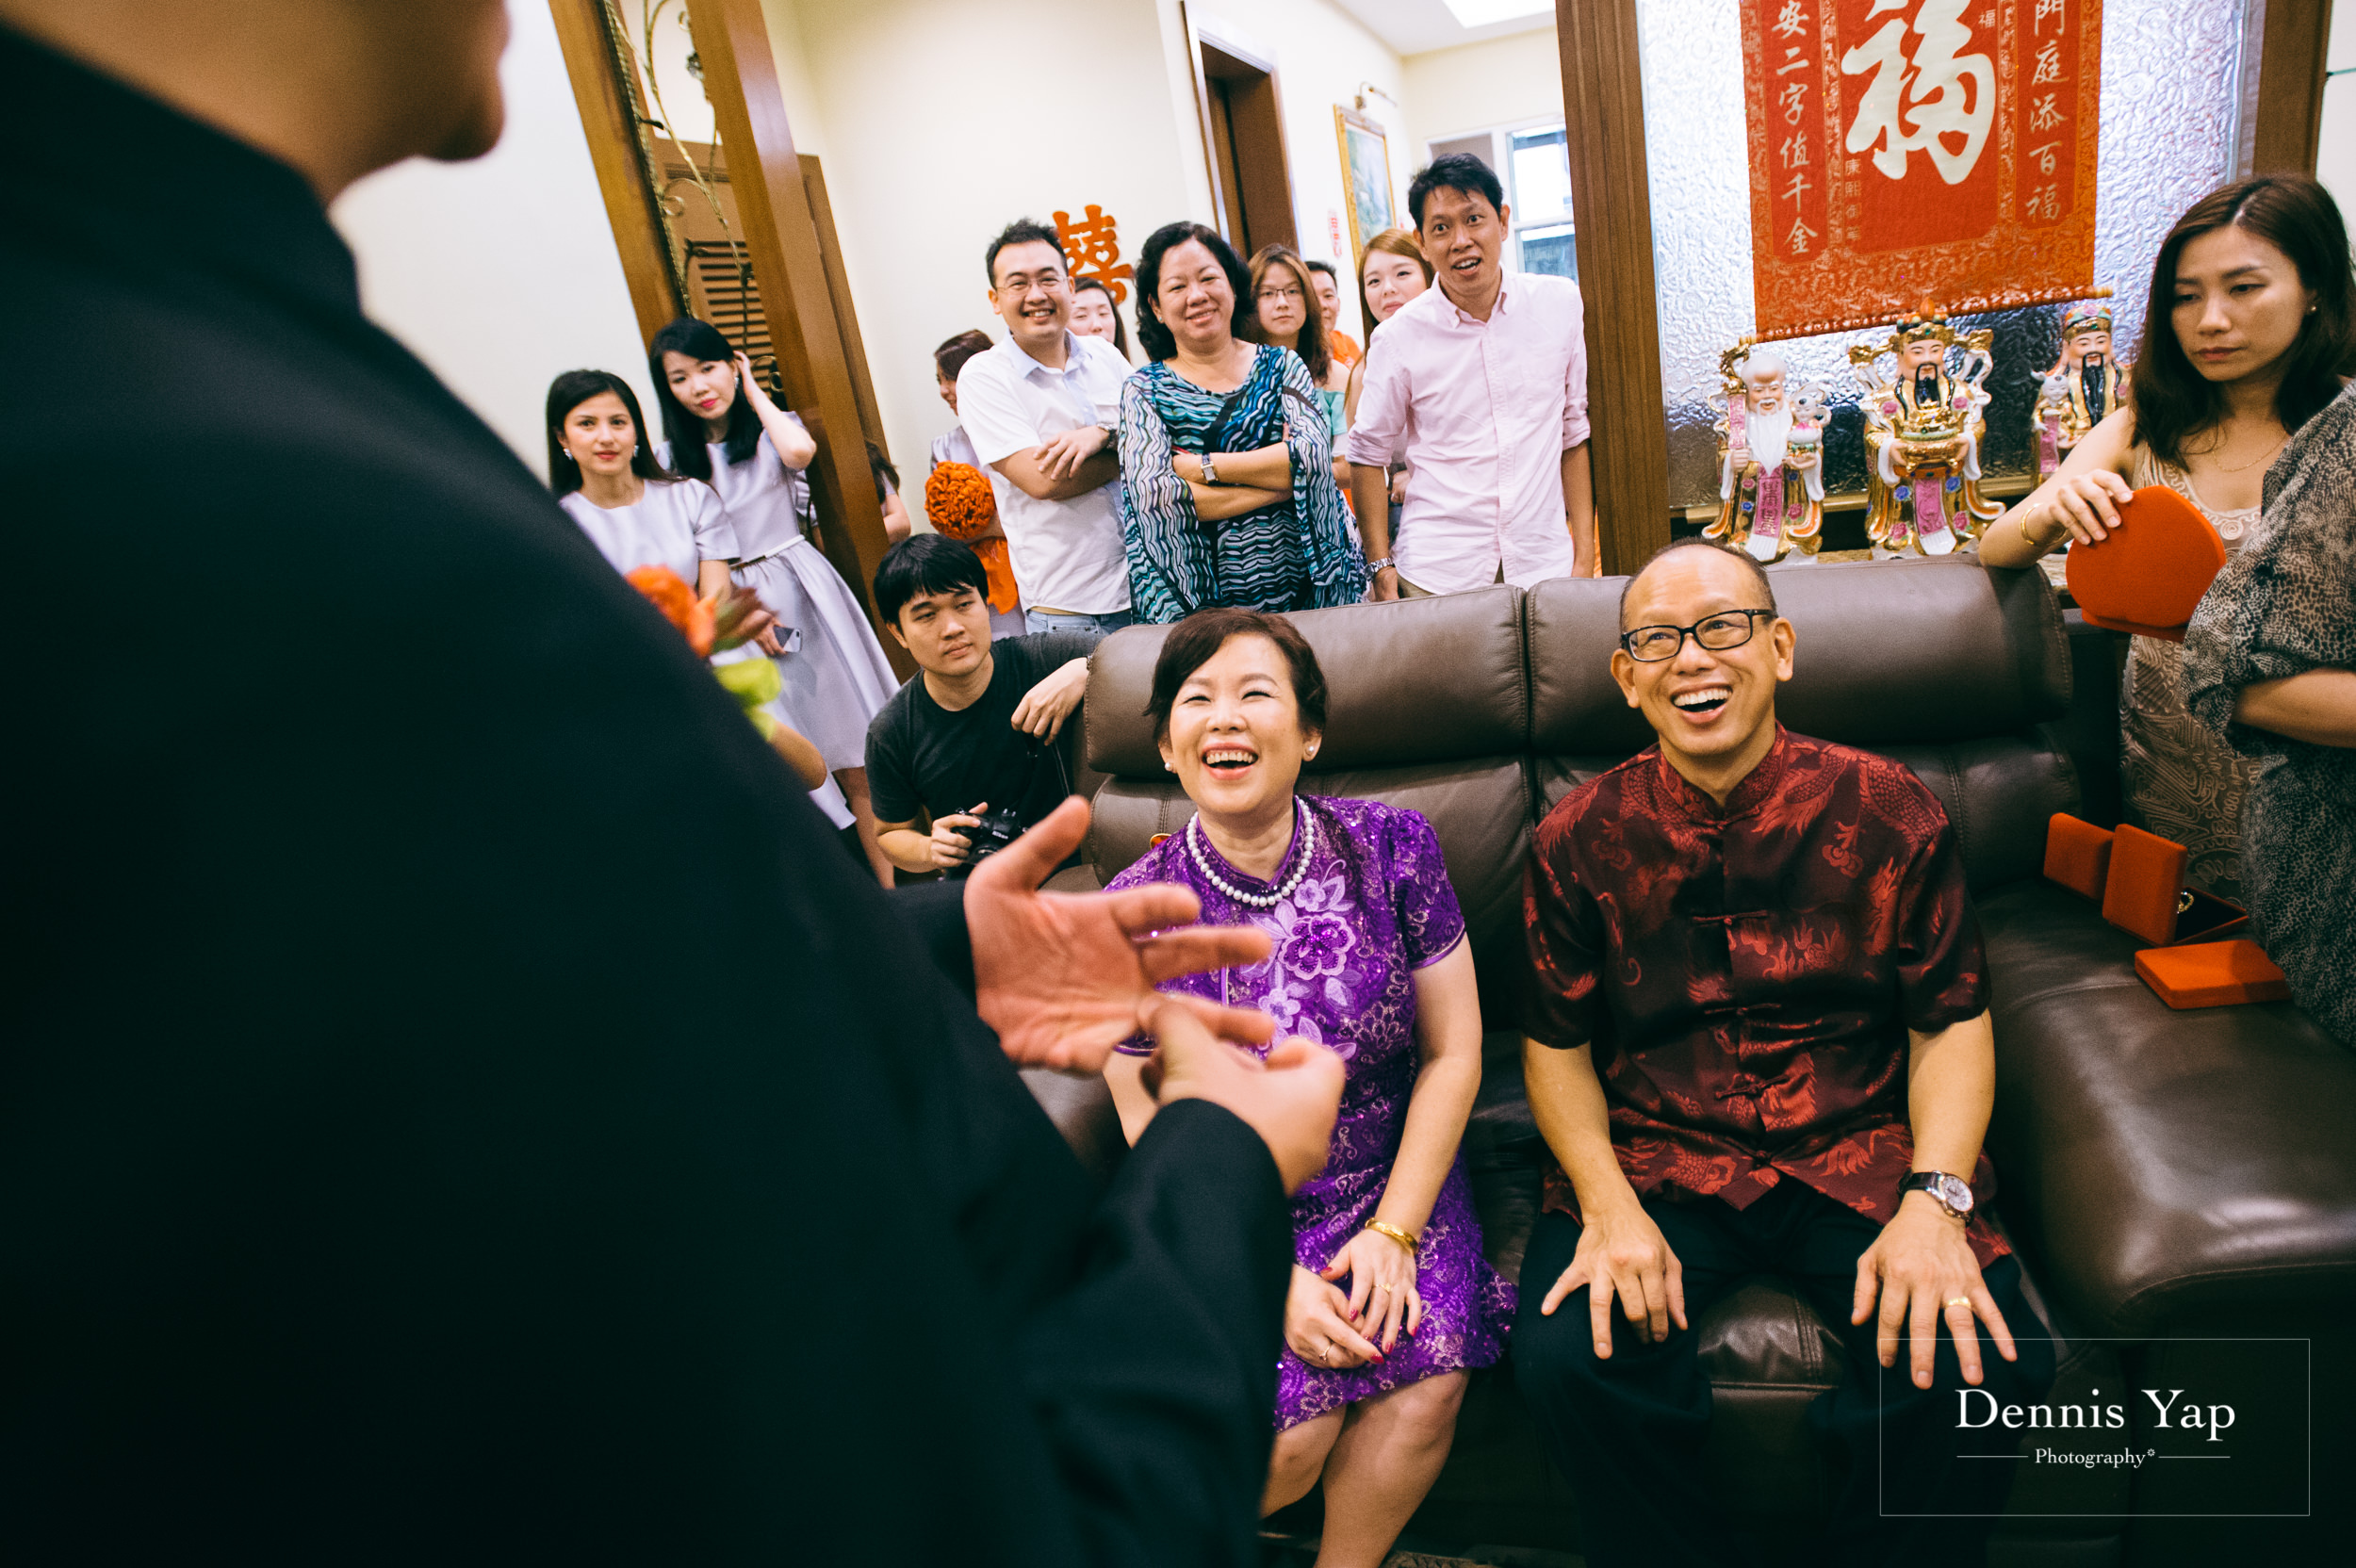 edmond erica tea ceremony kuala lumpur dennis yap photography chinese traditional happy-13.jpg